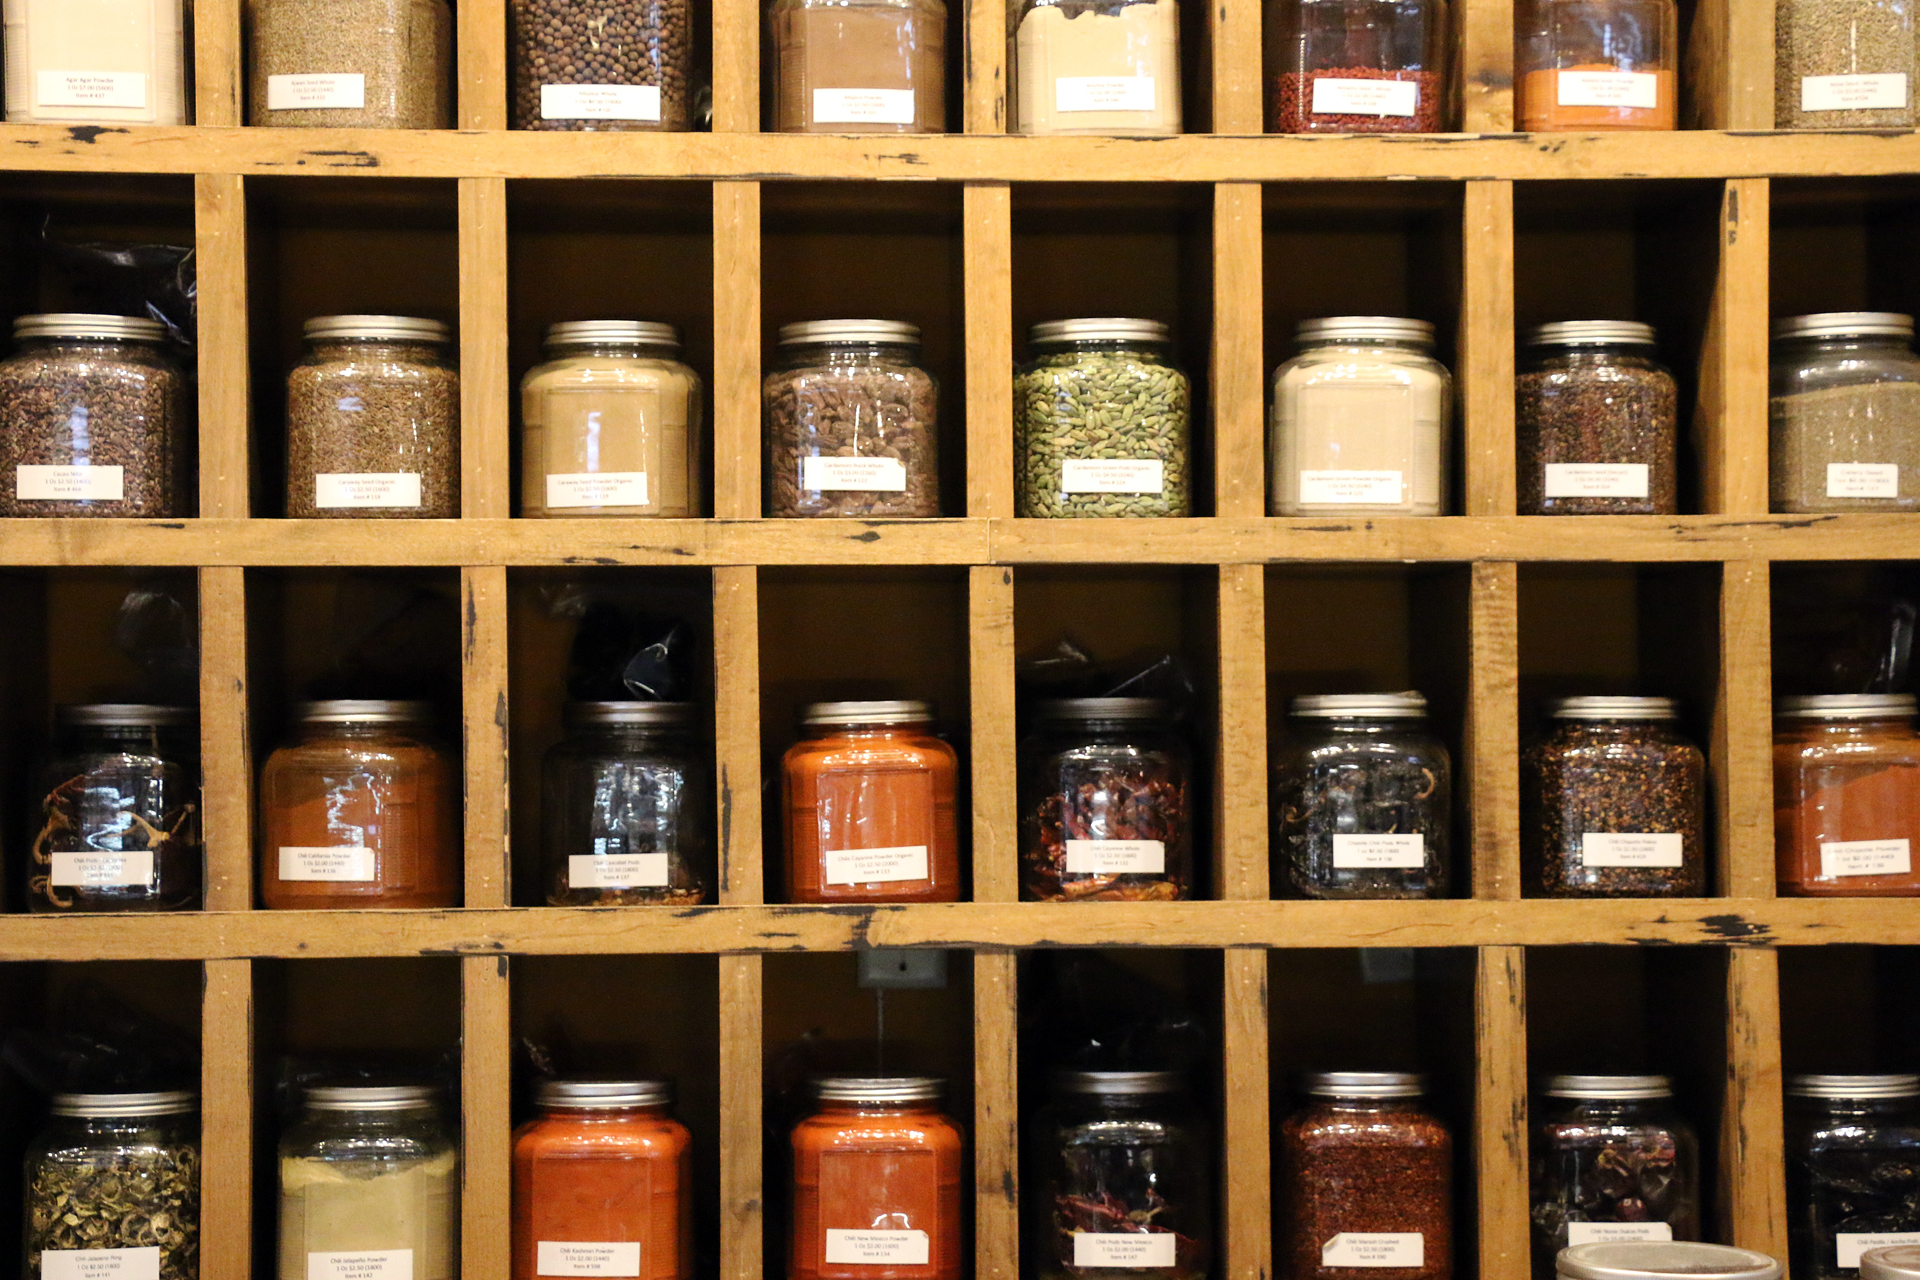 Rows and rows of spices at Whole Spice.